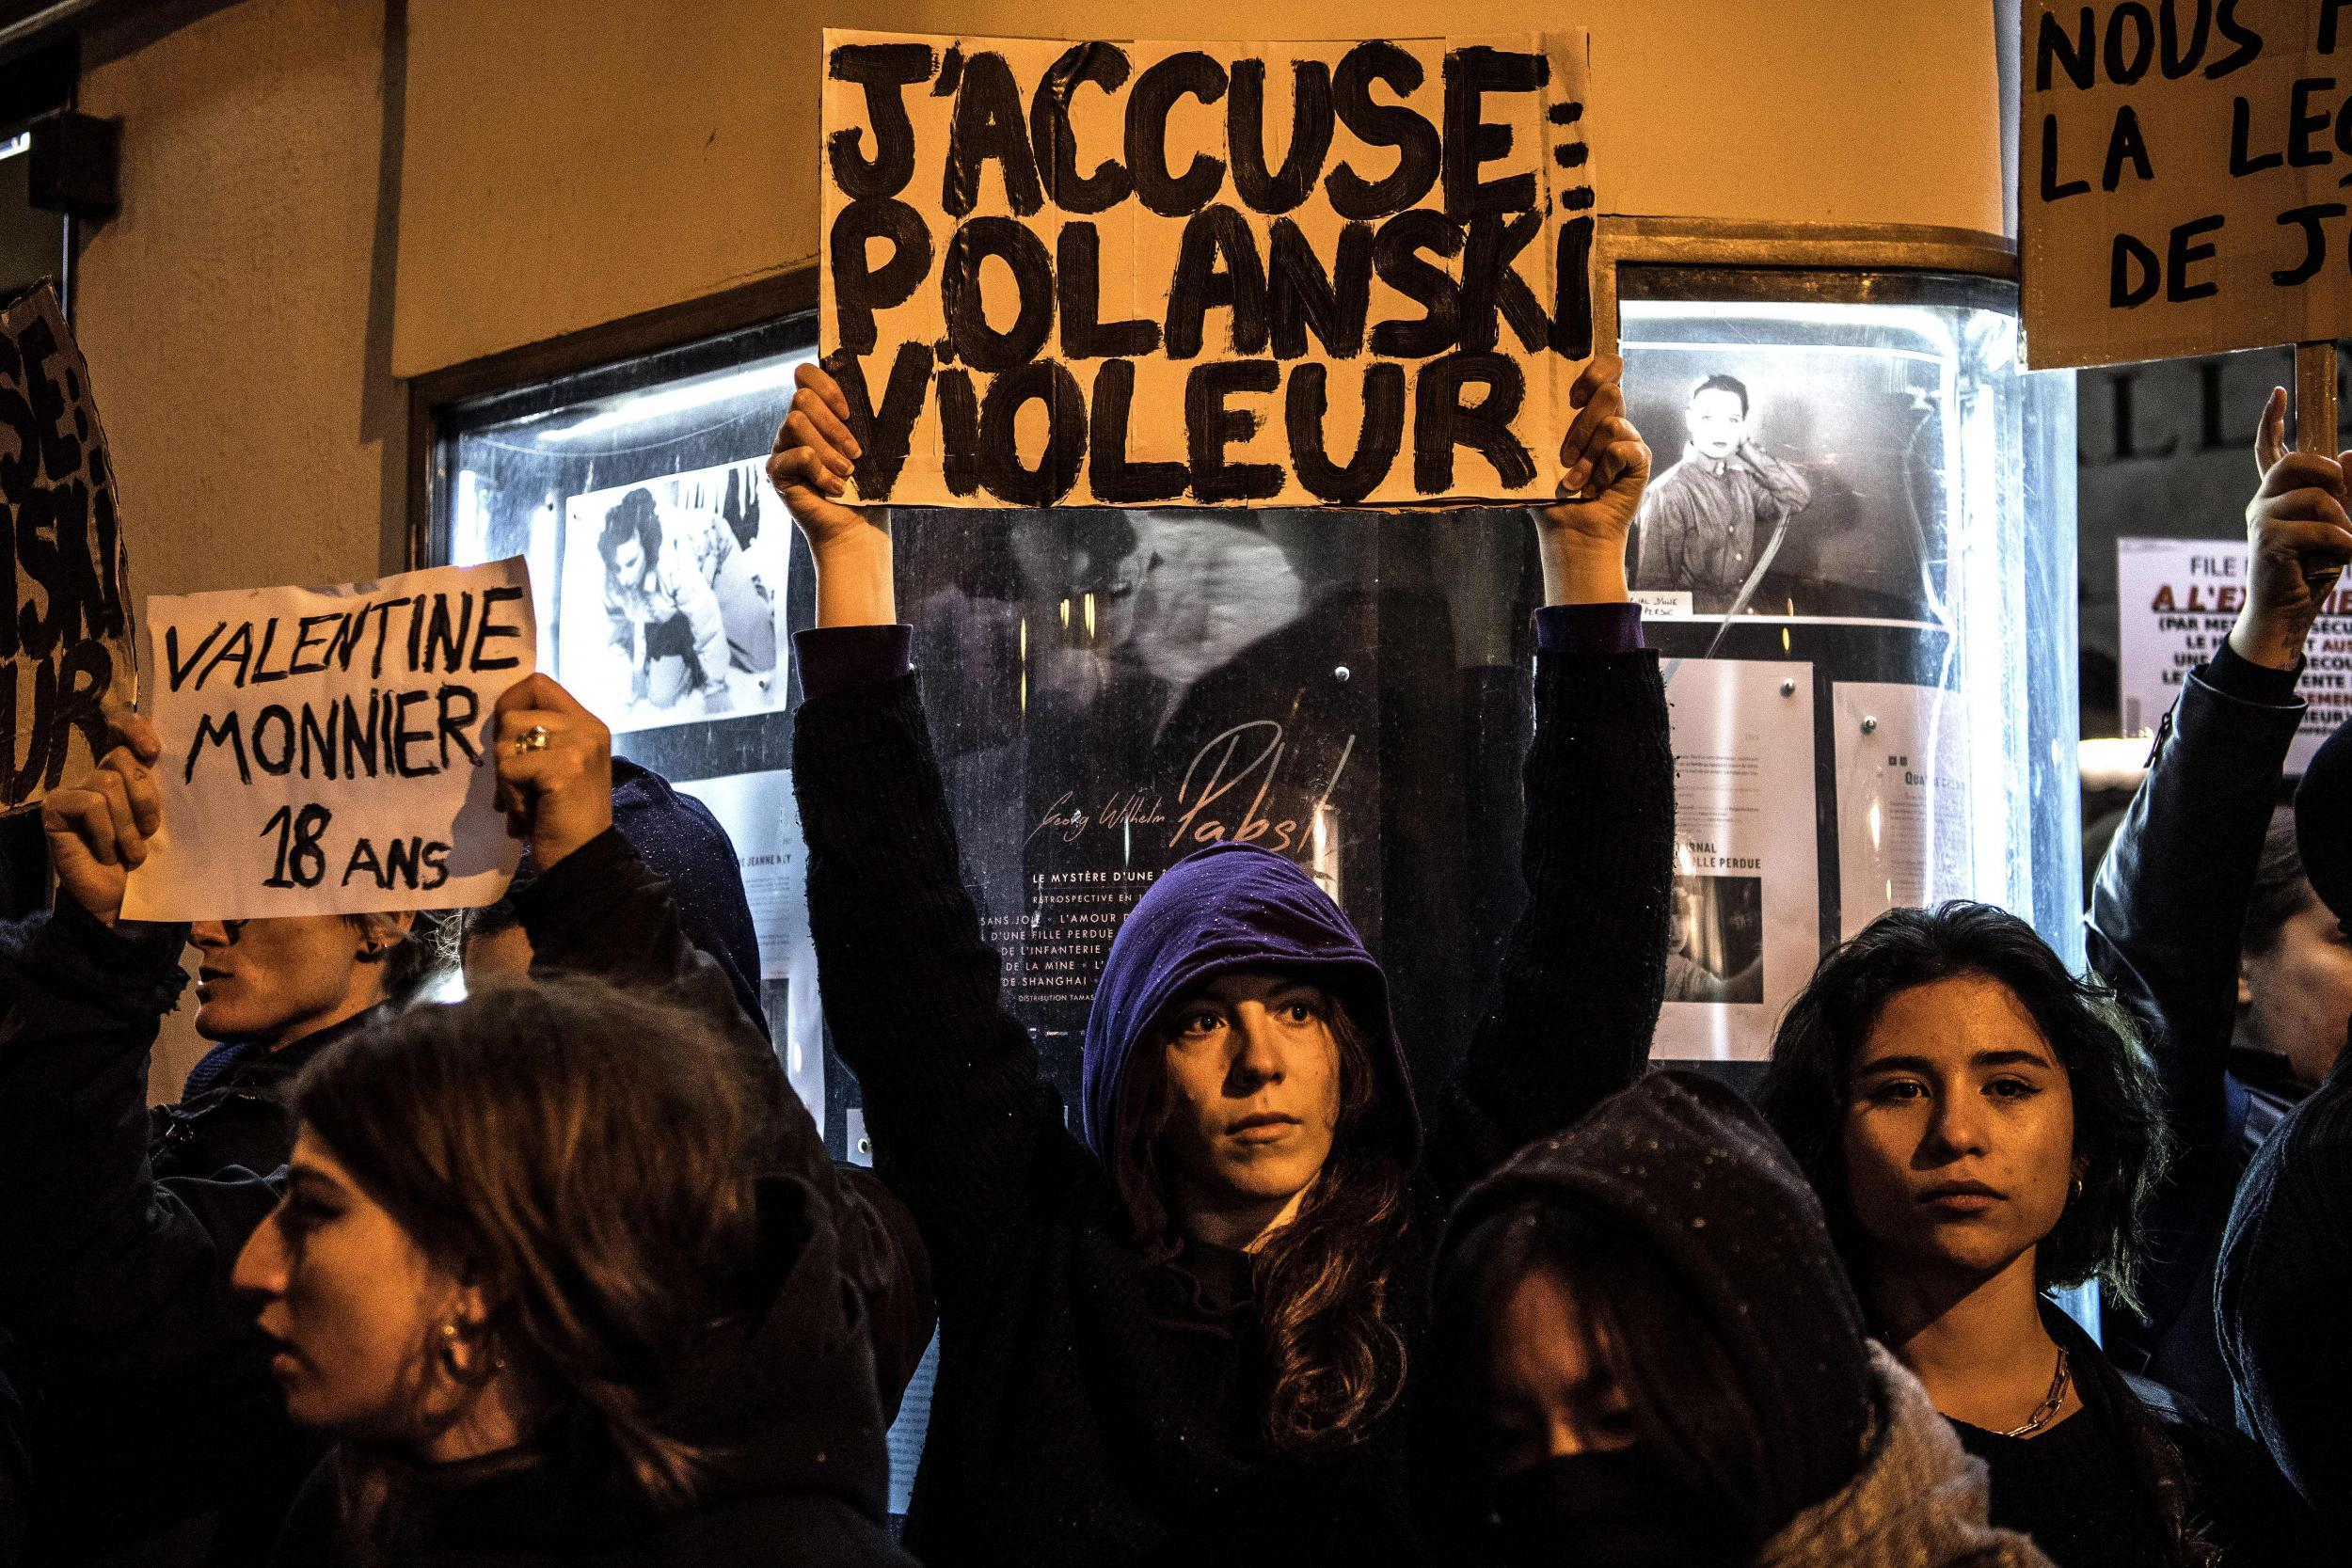 Roman Polanski: Paris screening of An Officer and a Spy shut down by protestors following new rape allegation